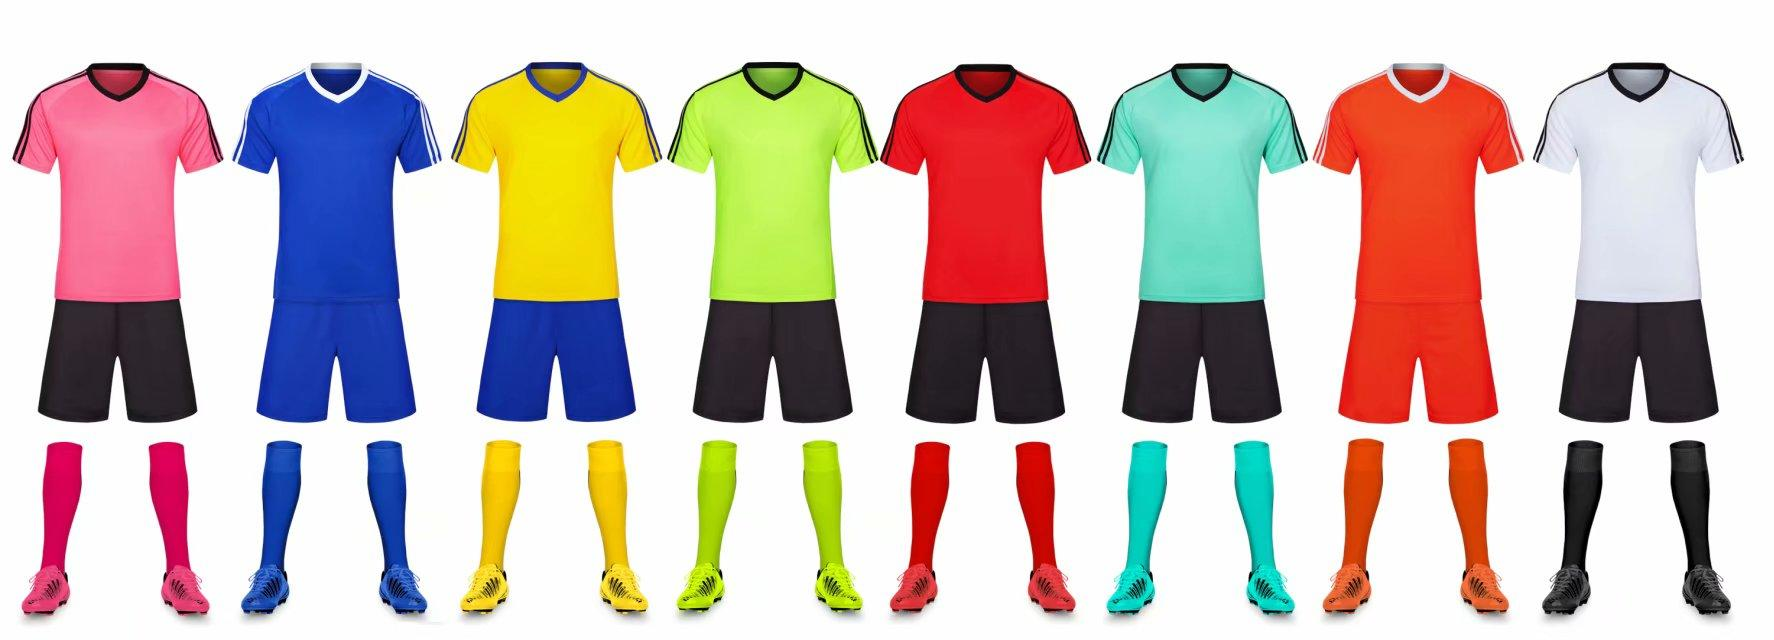 Men blank double-sided football team Uniforms kits Sports clothes tracksuits Personality Customized Football Sets tops With Shorts B37-26